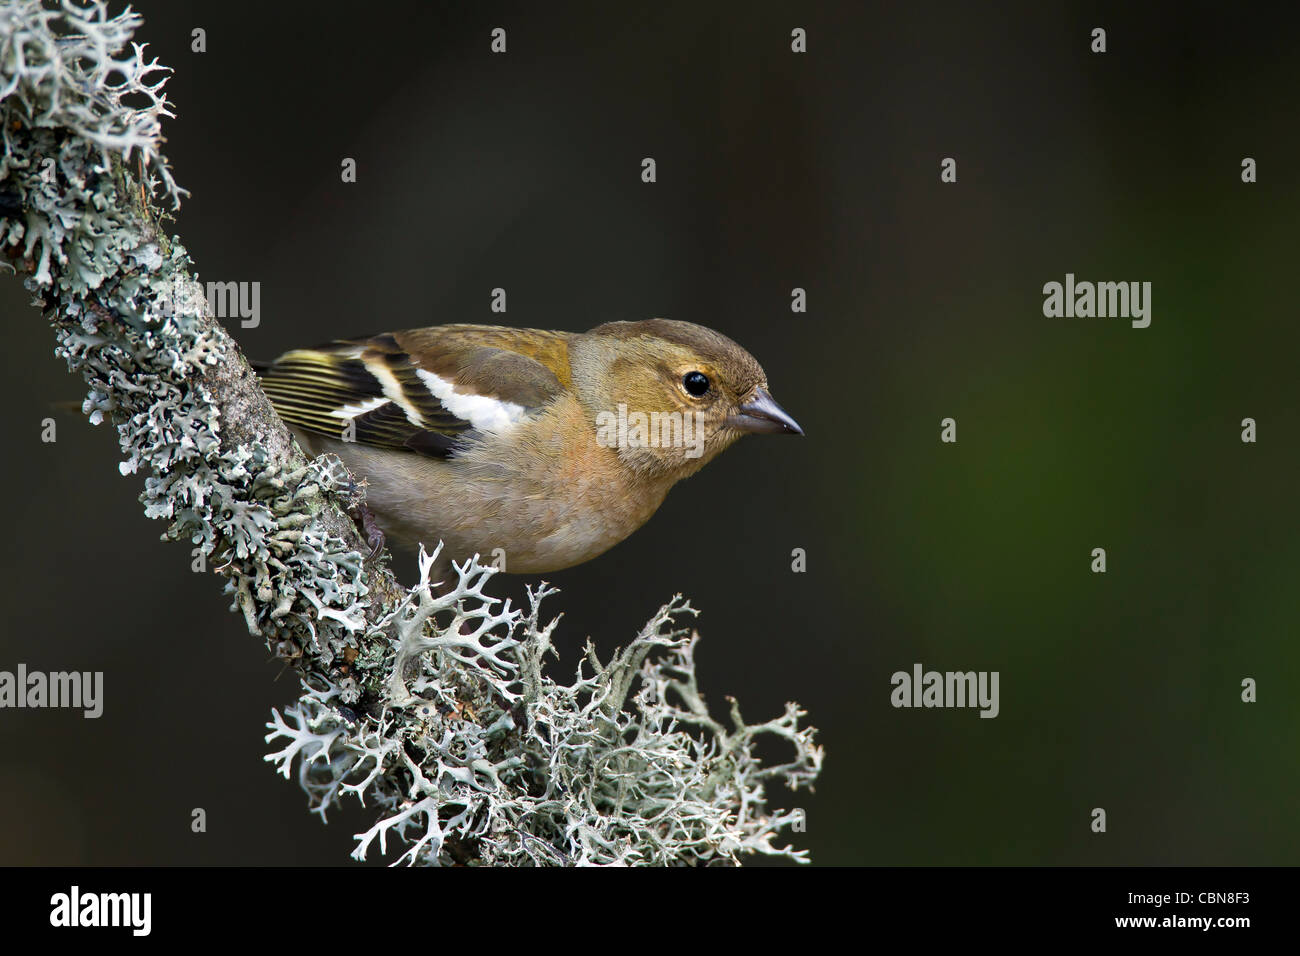 Chaffinch (Fringilla coelebs) female perched on branch covered with lichen, Sweden - Stock Image